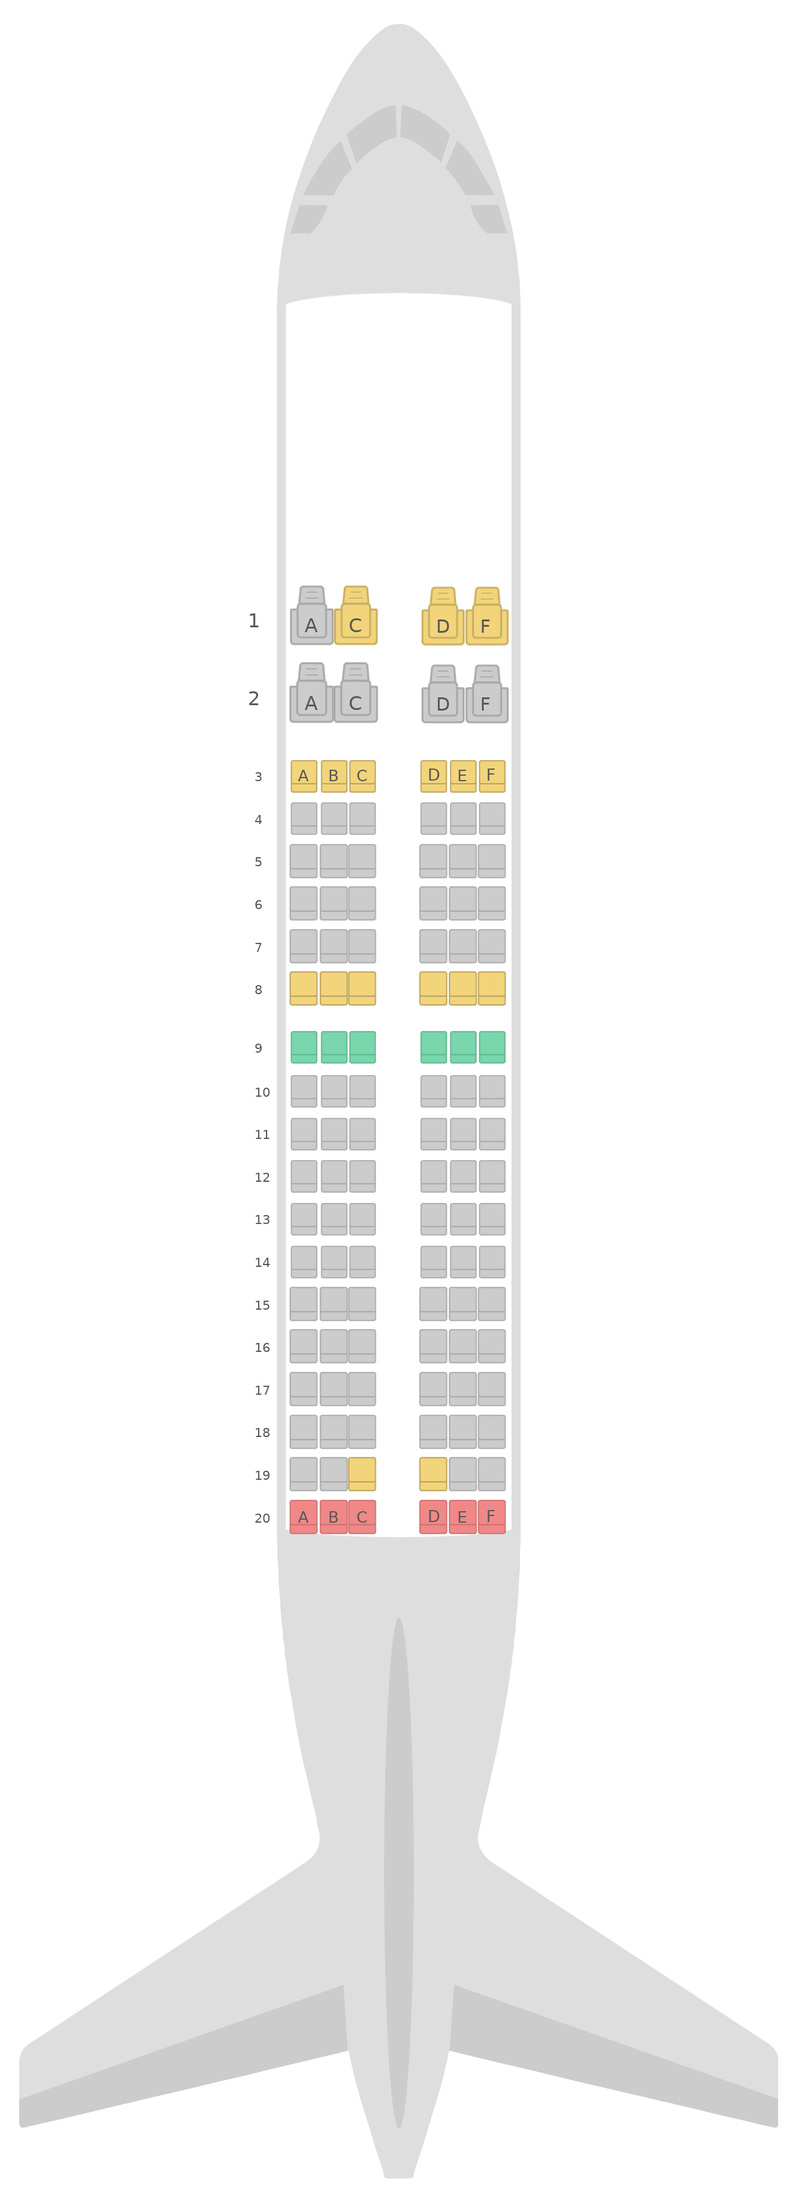 Seat Map Azerbaijan Airlines Airbus A319 v1